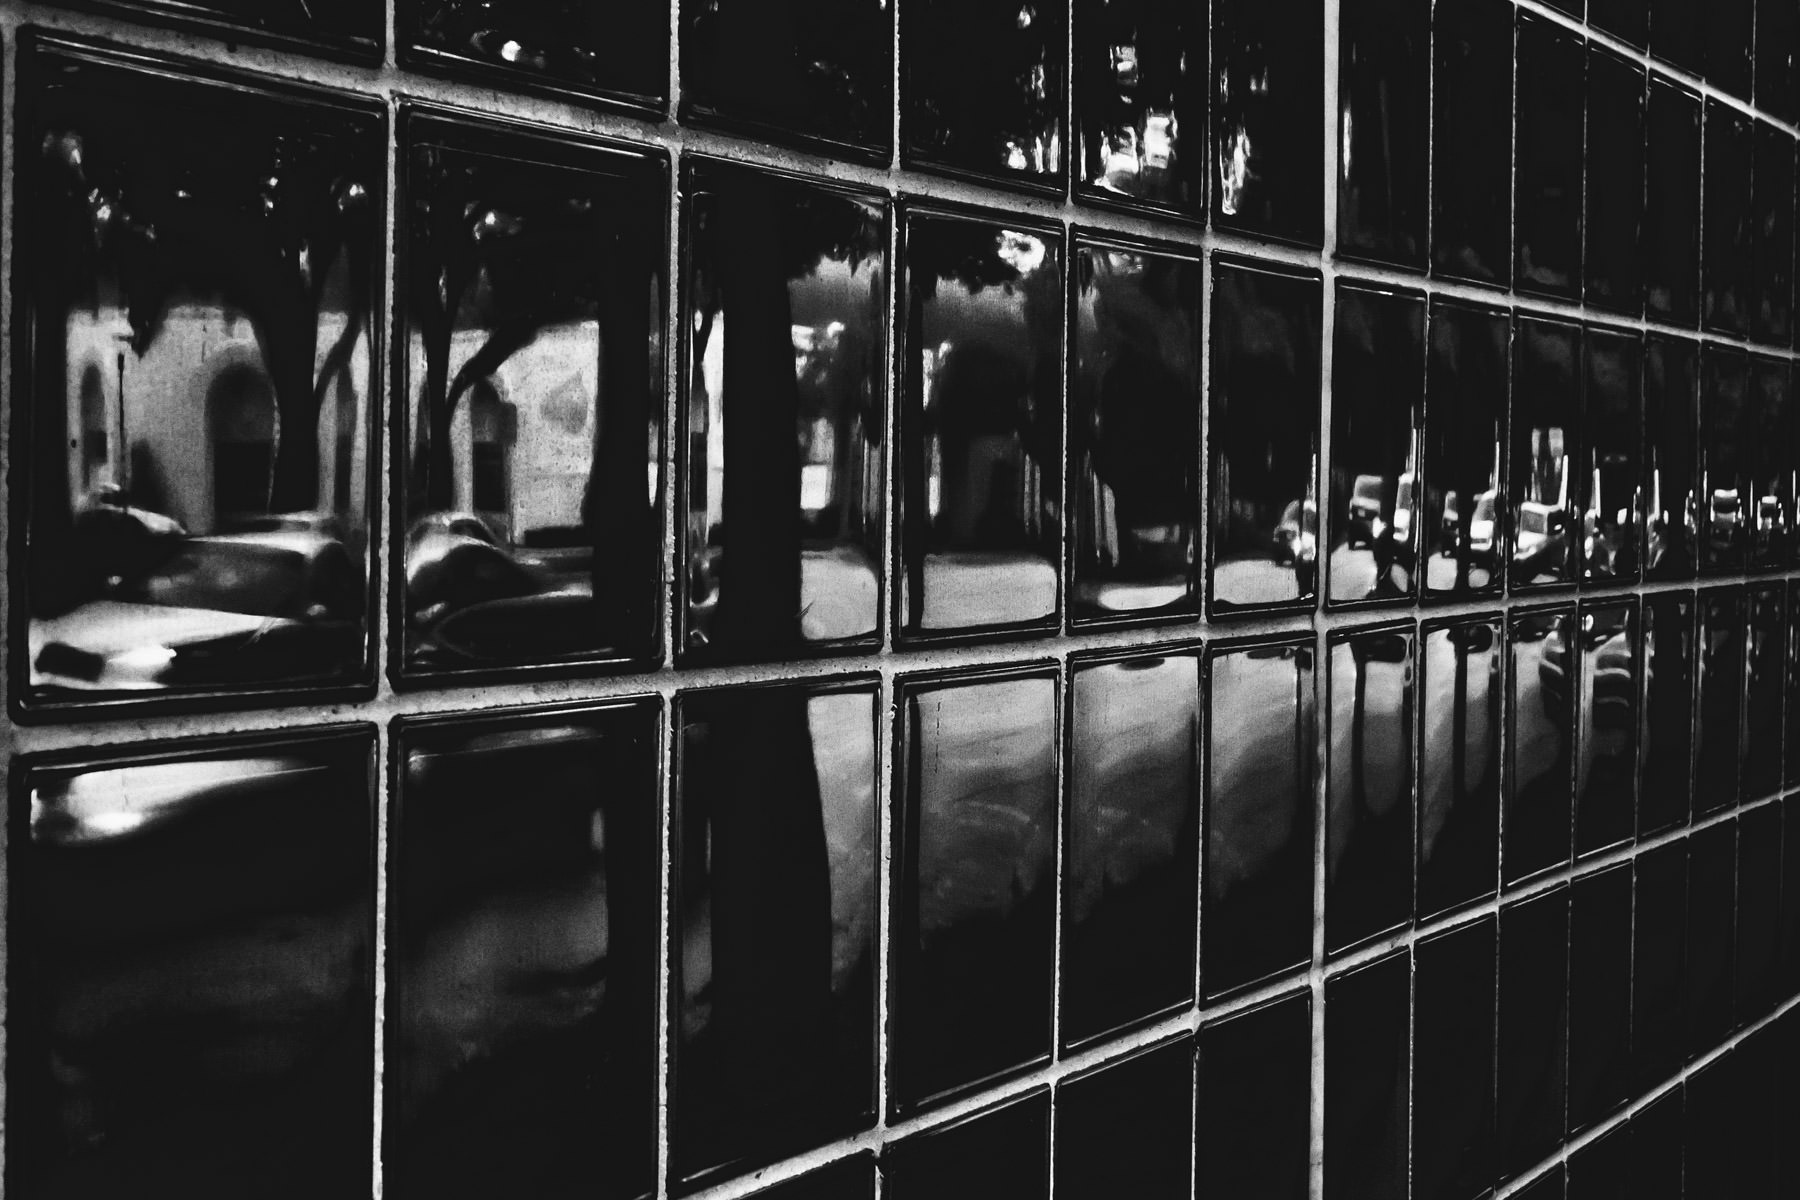 Bissonet Street reflected in the glass blocks of Houston's Contemporary Arts Museum.